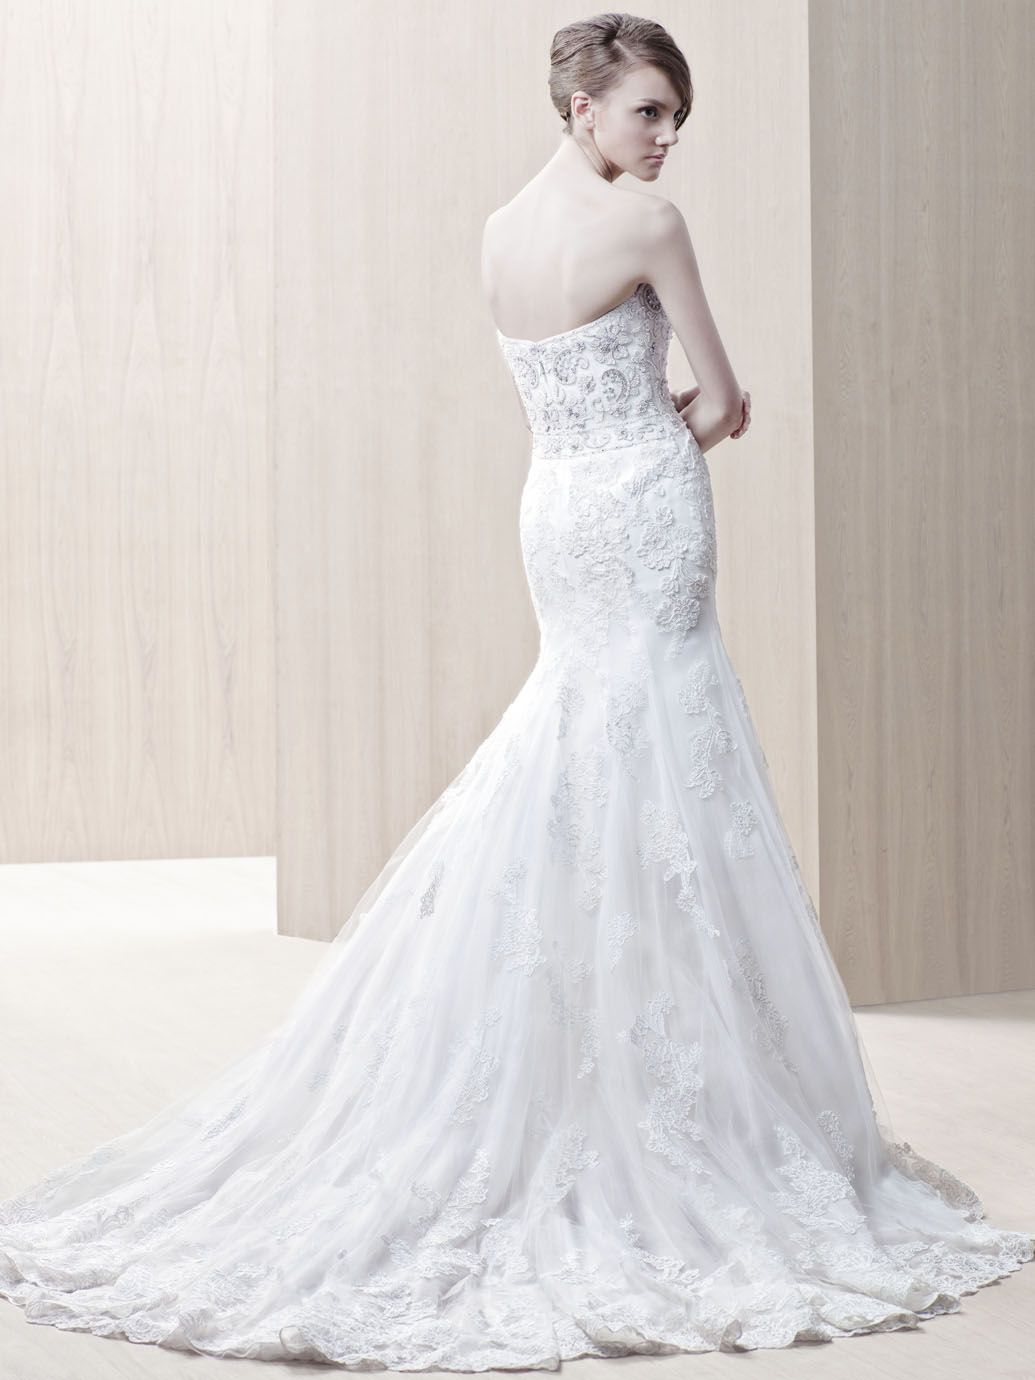 Enzoani Gerry Back View Find Gown De Ma Fille Bridal In Ft Worth TX 8179212964 Demafille